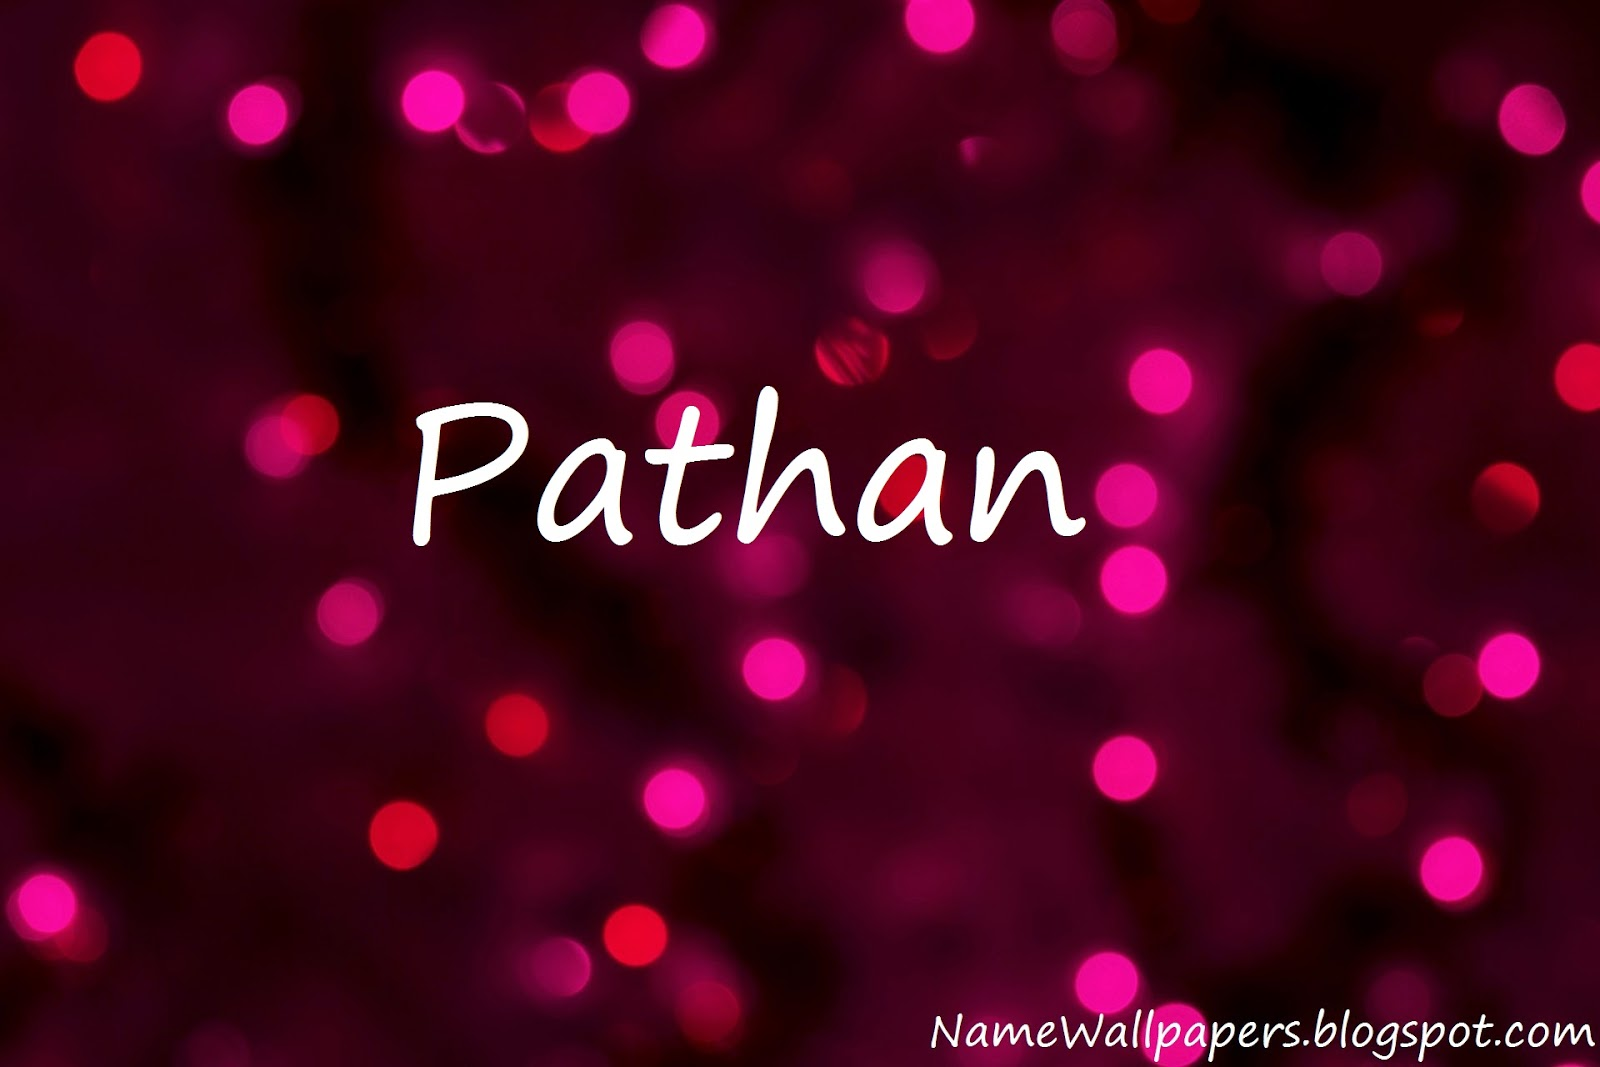 Pathan Name Wallpapers Pathan ~ Name Wallpaper Urdu Name